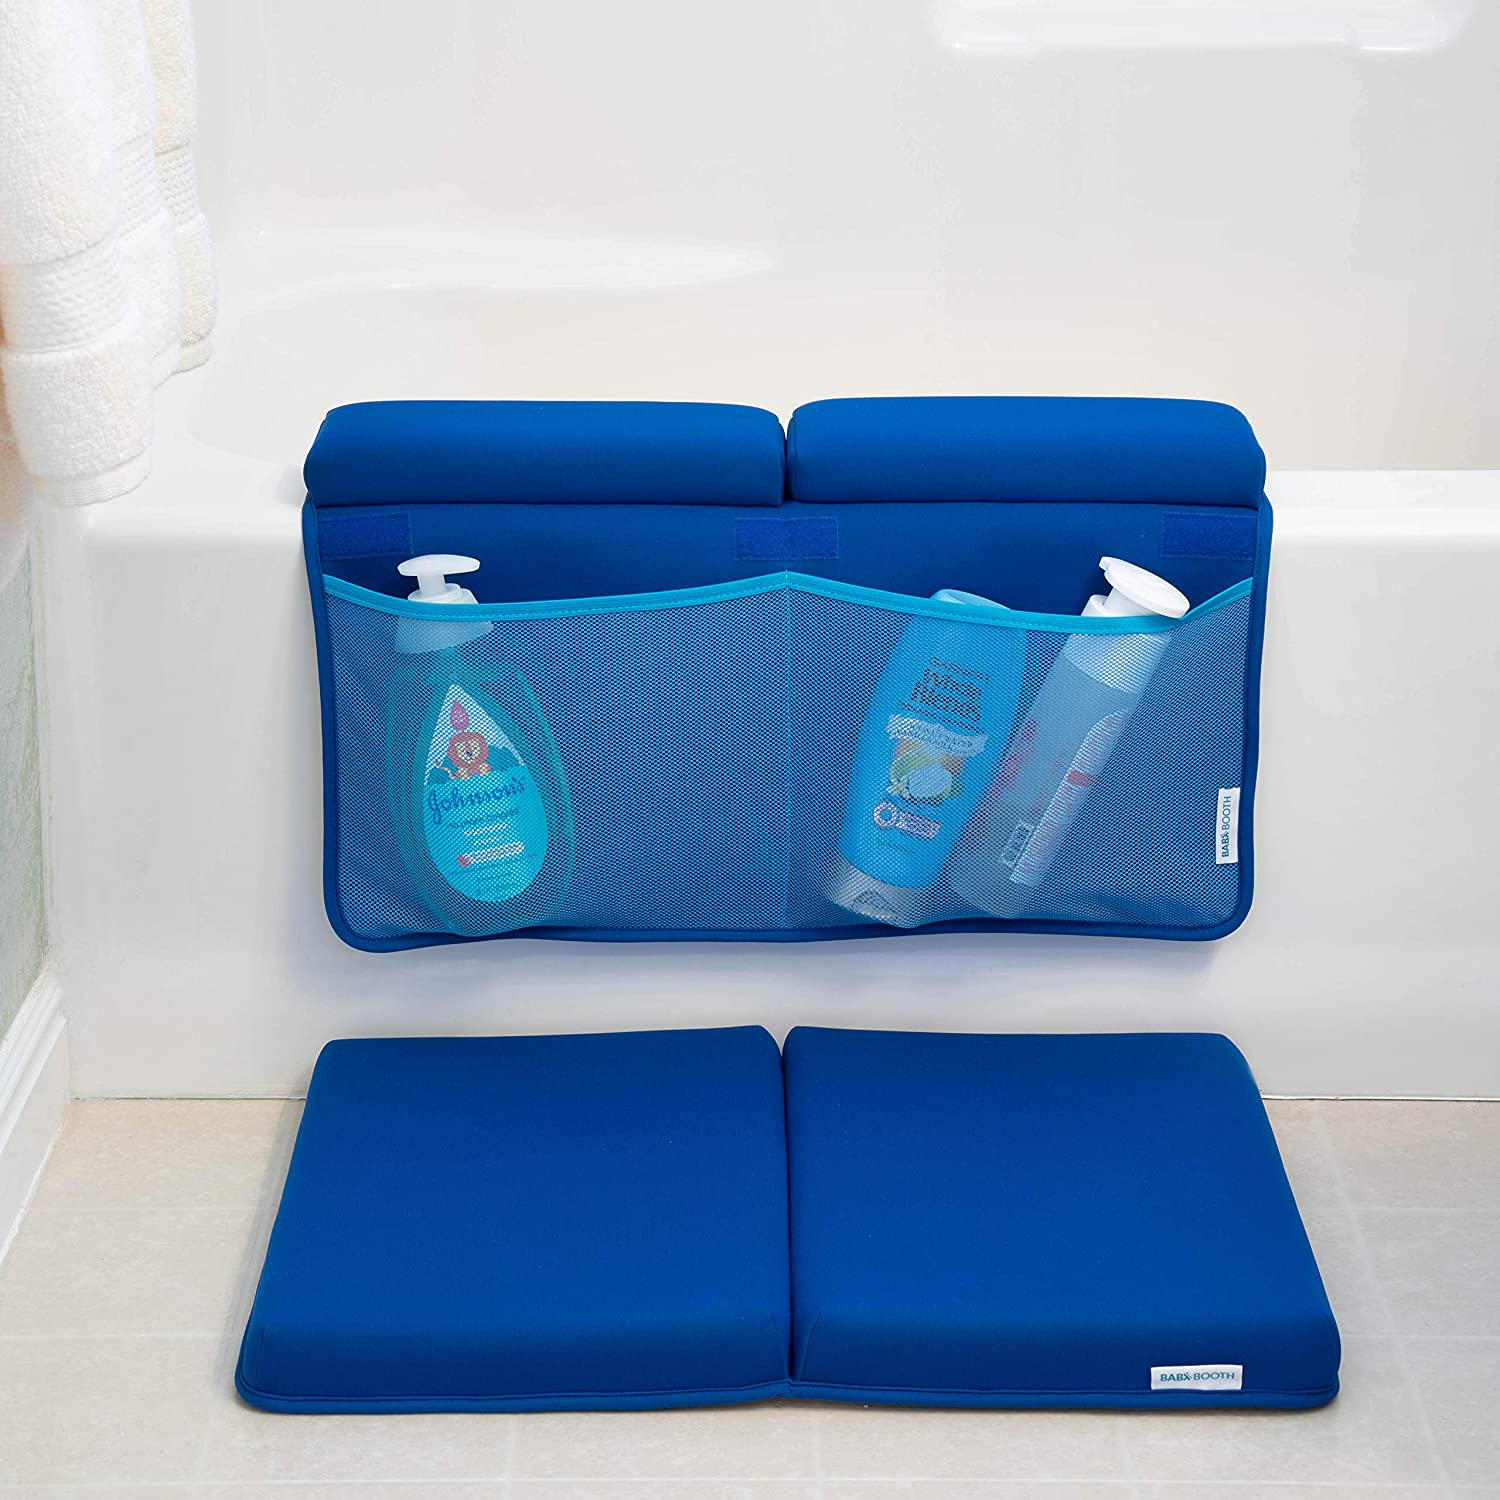 Bath Kneeler and Elbow Rest Plush Padding and Comfort for Moms Dads